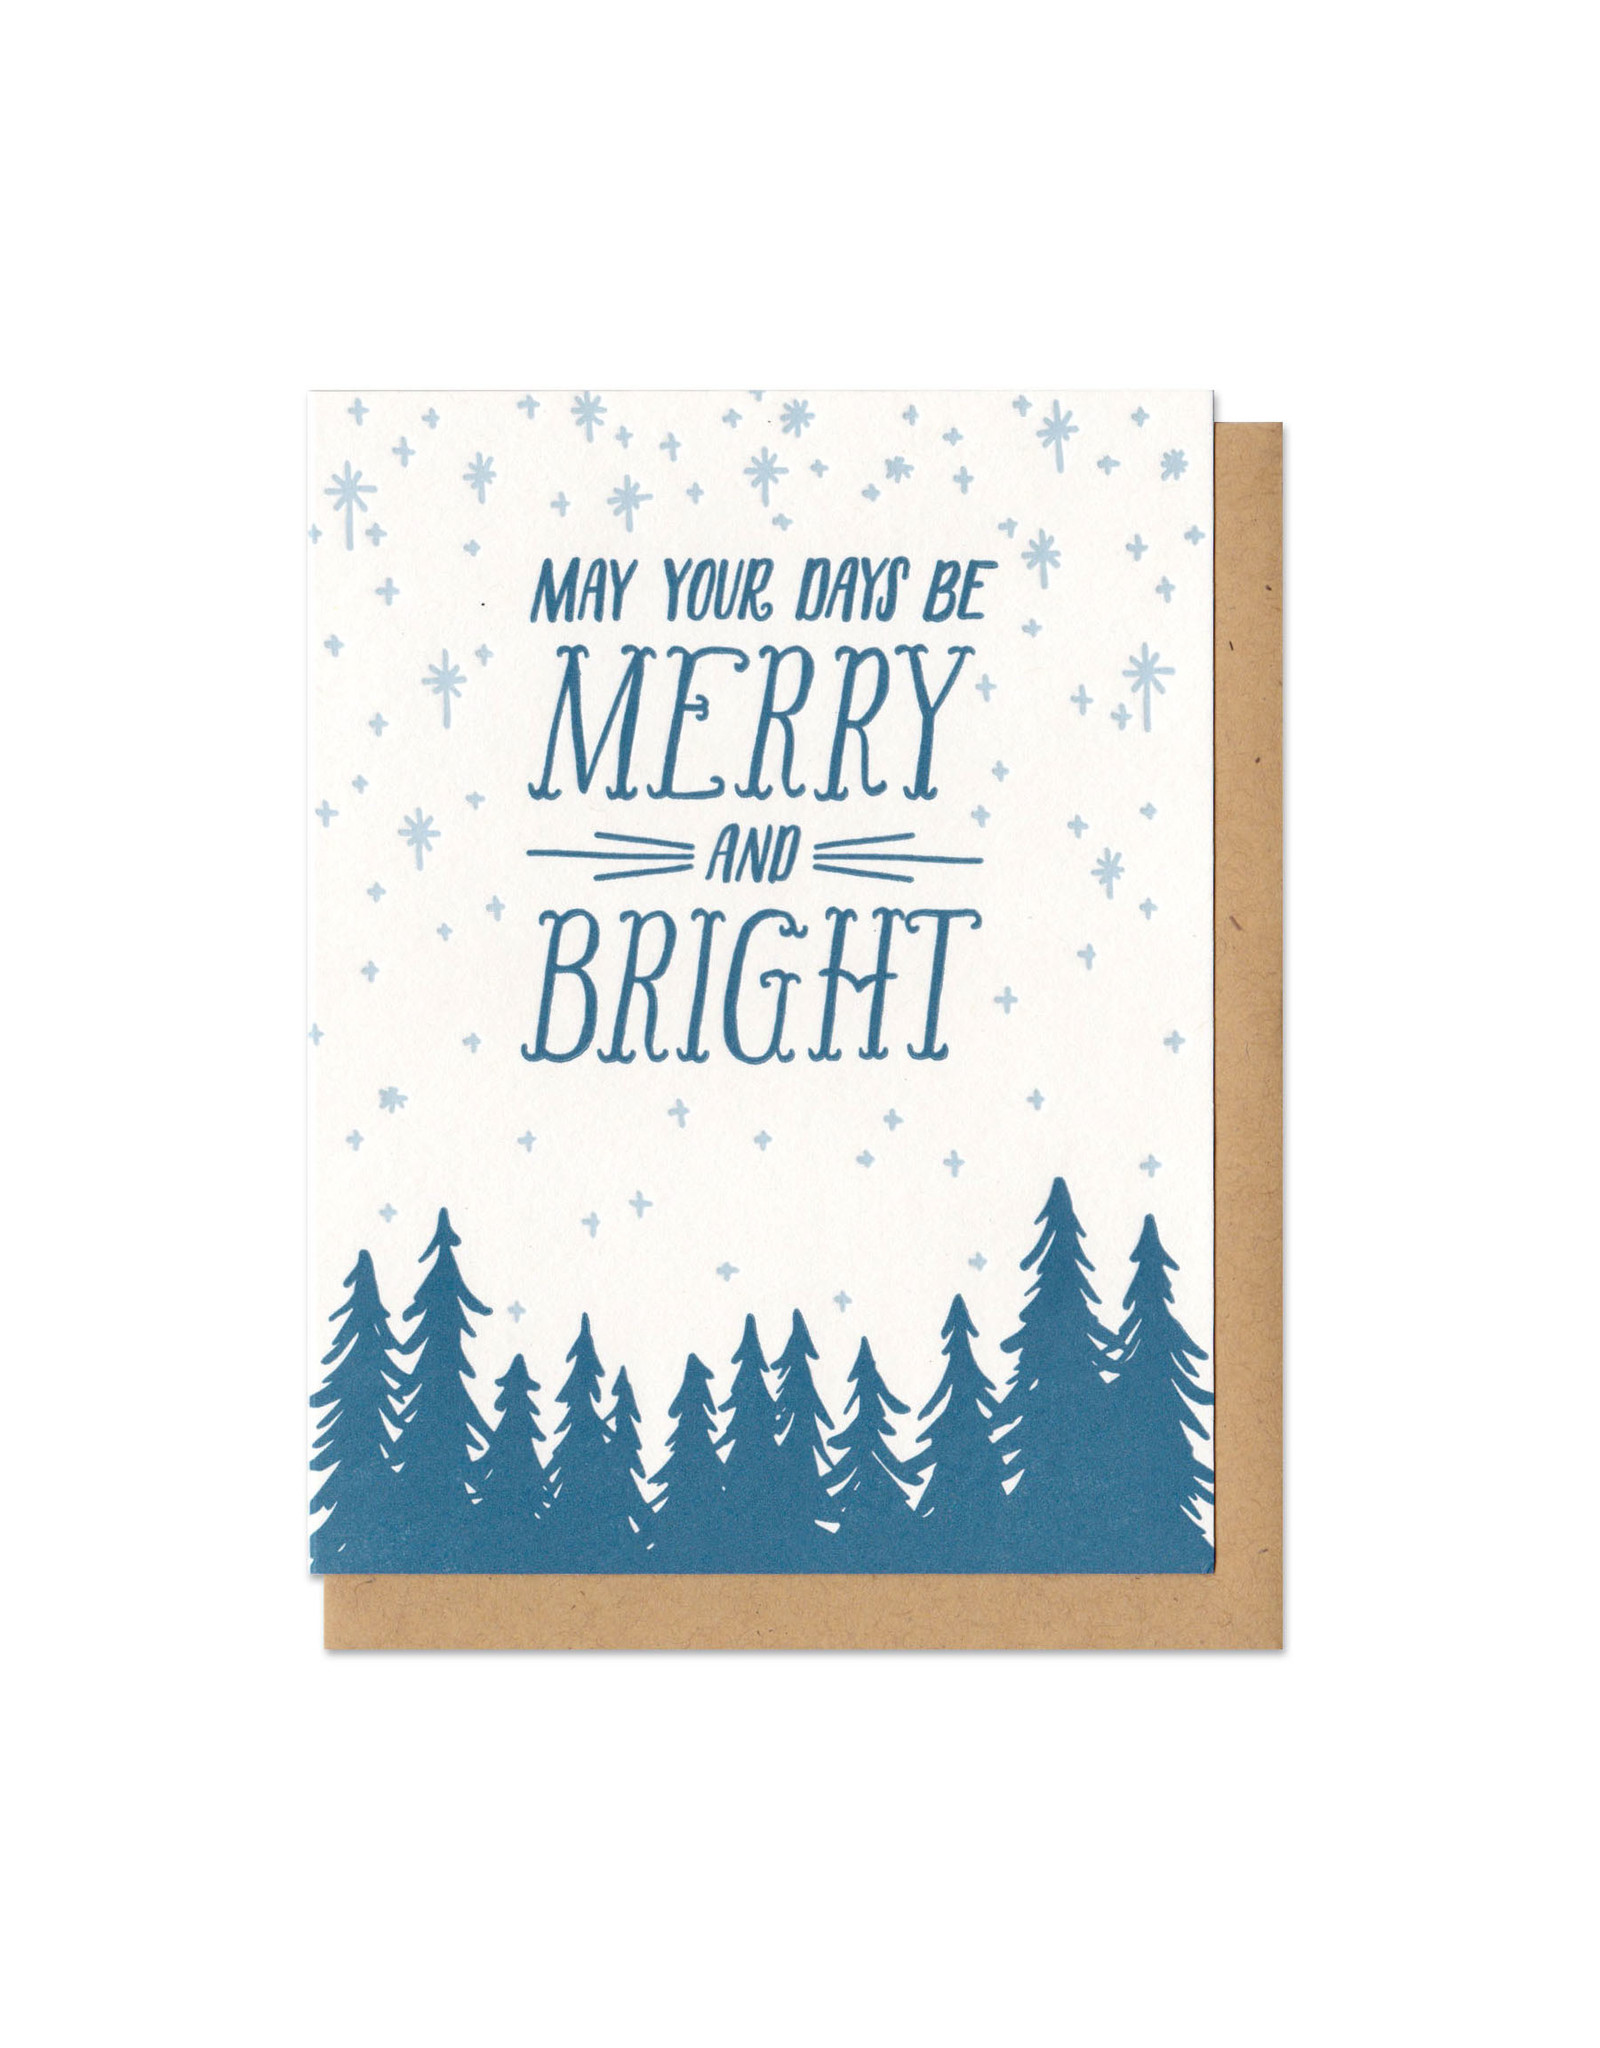 Merry and Bright Card Box Set of 6